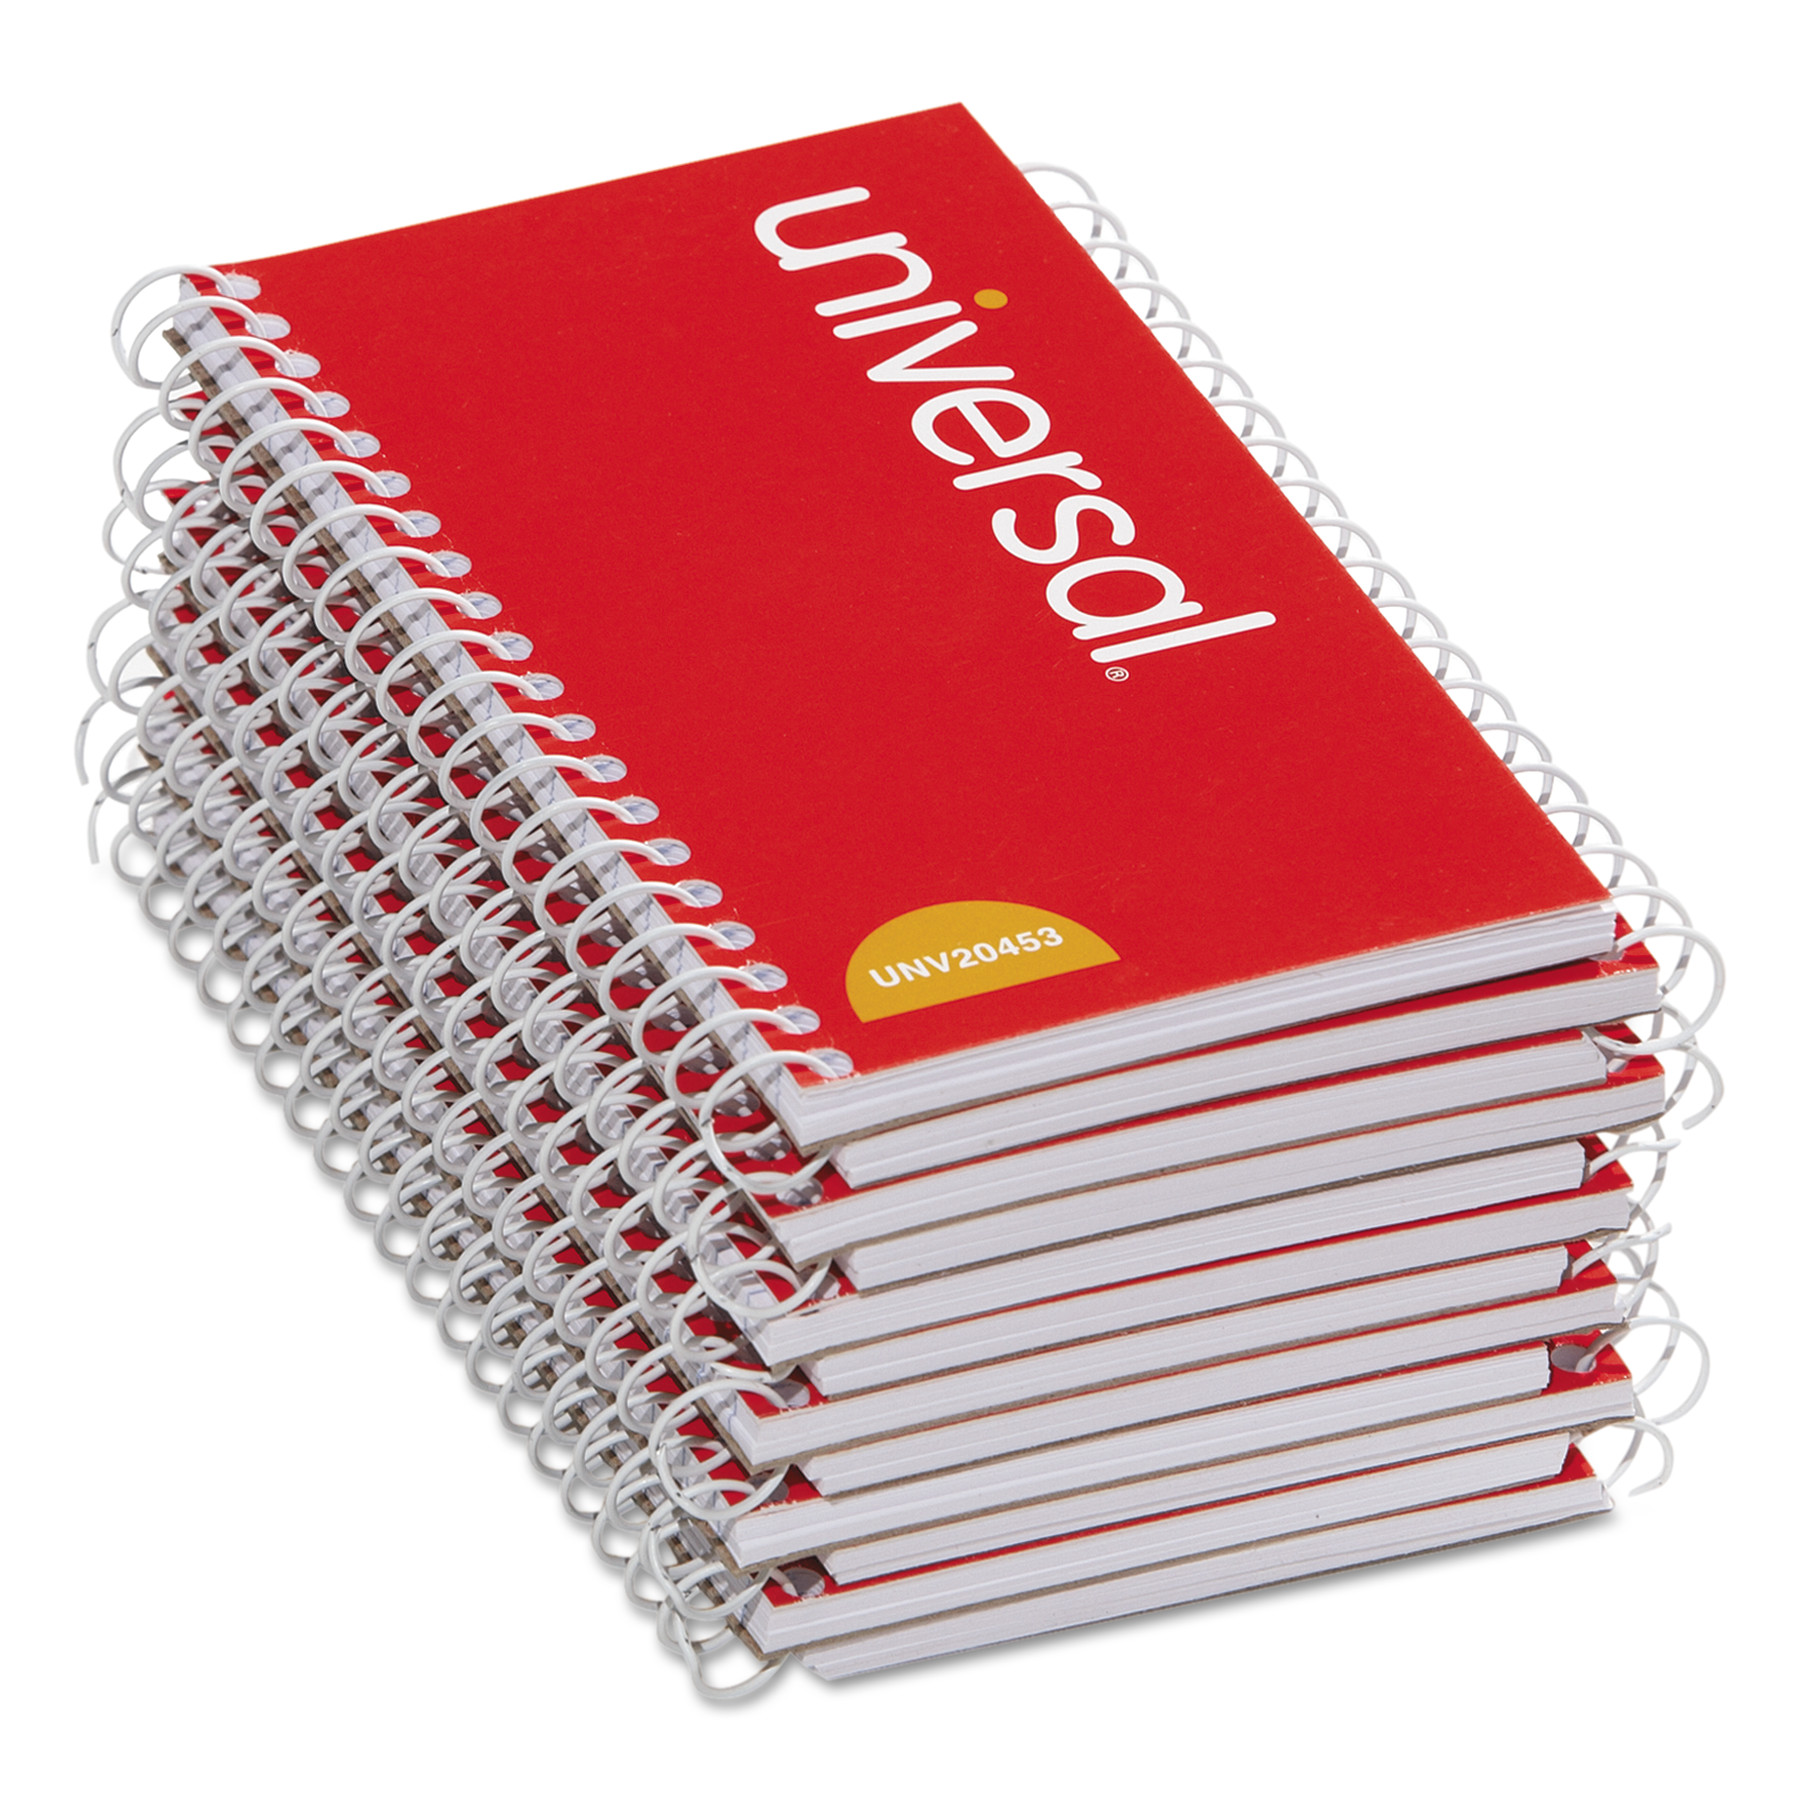 Universal Wirebound Memo Book, Narrow Rule, 5 x 3, Orange, 12 50 Sheet Pads/Pack